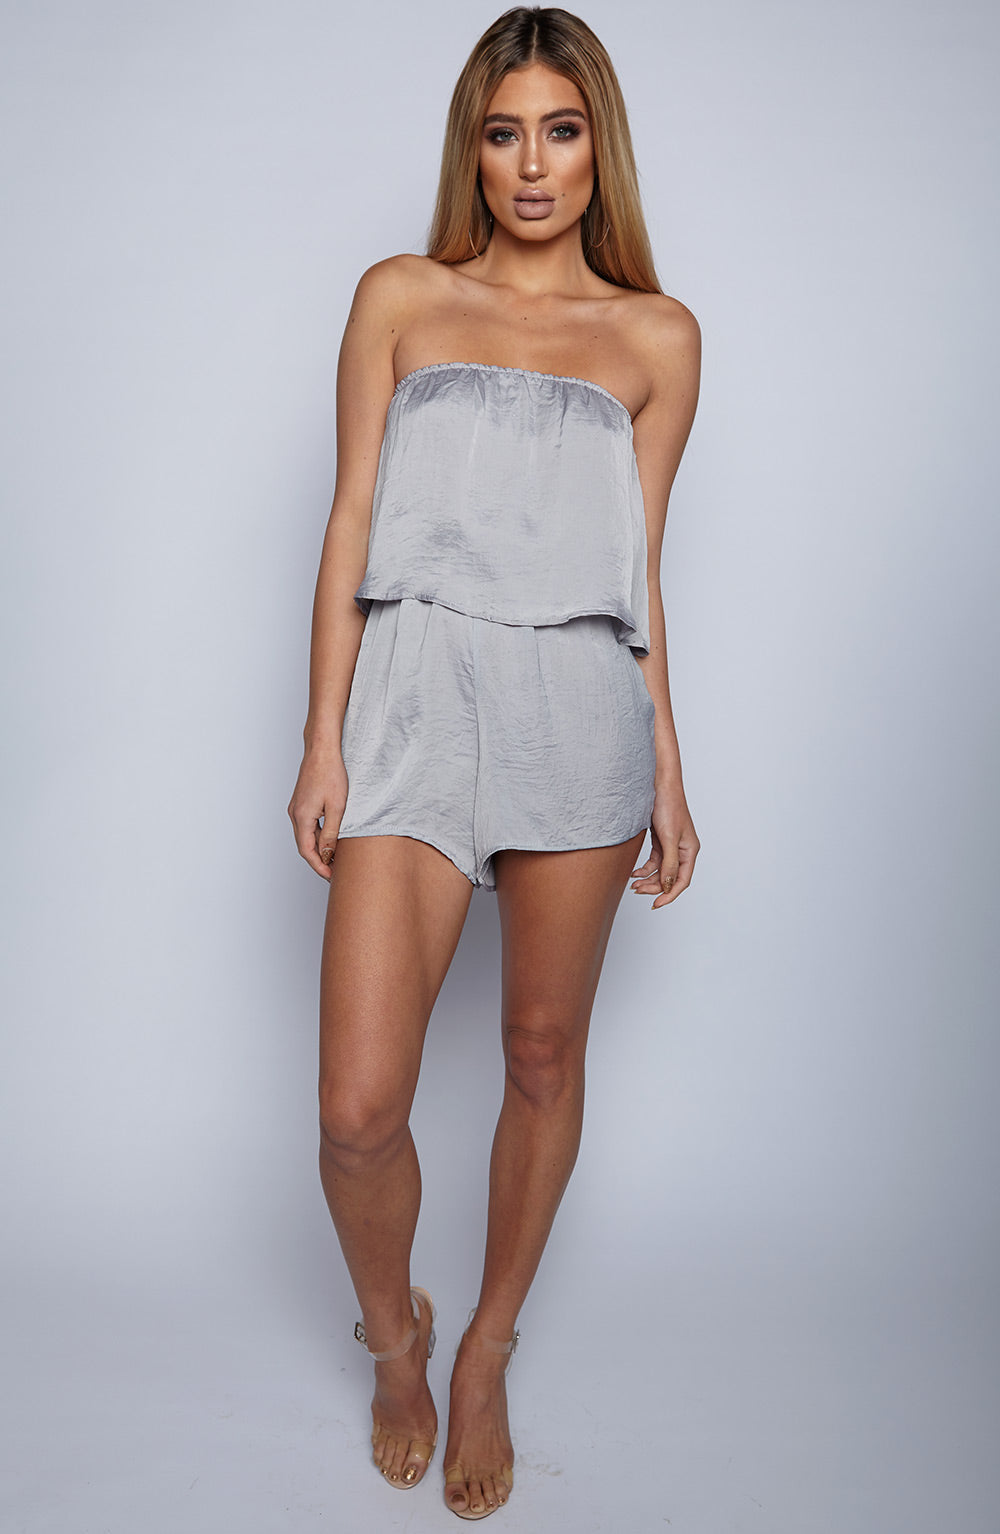 On Another Level Playsuit - Grey